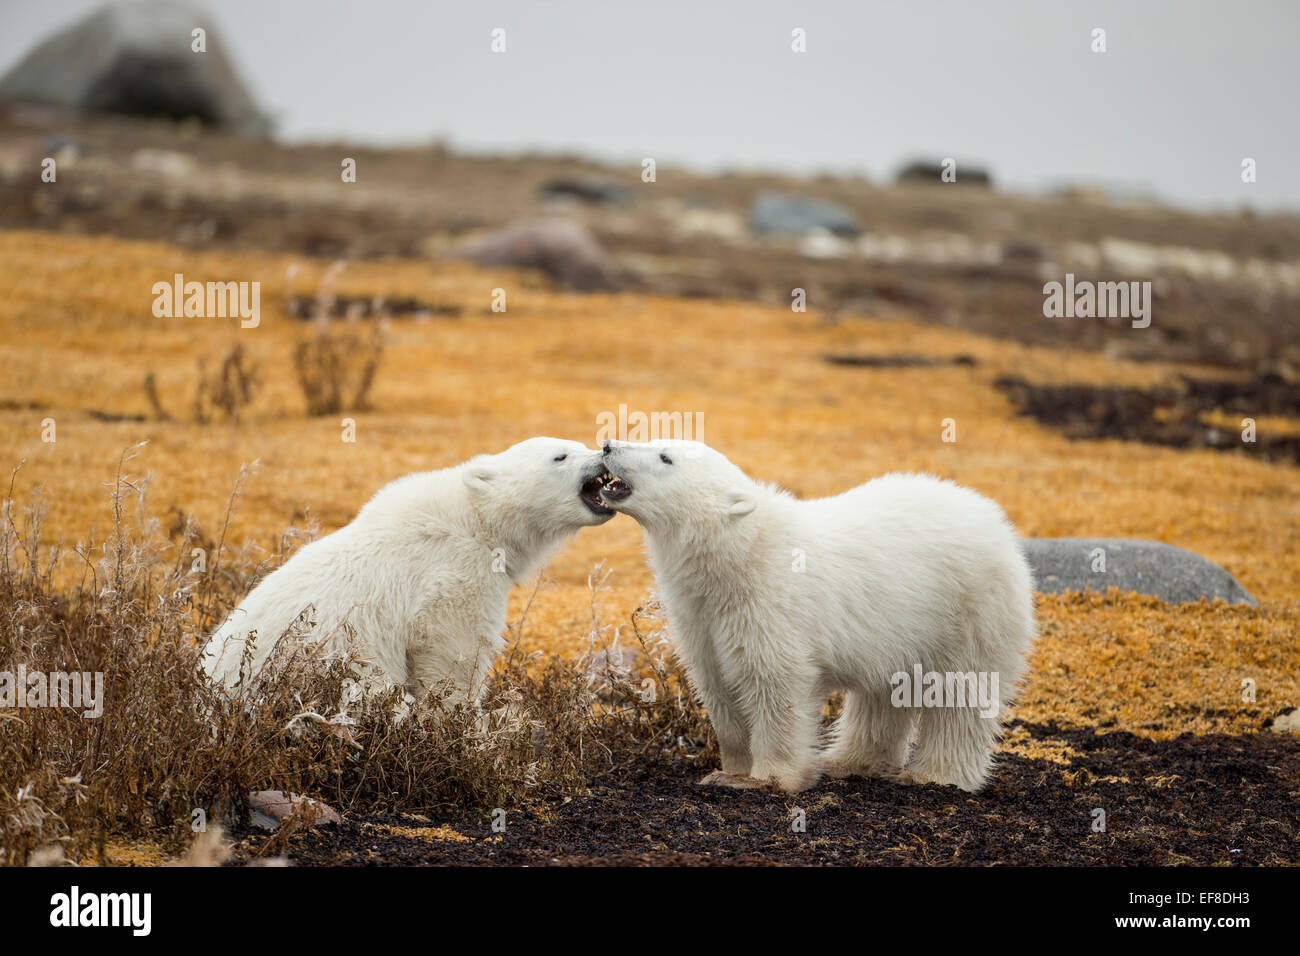 Canada, Manitoba, Churchill, Polar Bear Cubs (Ursus maritimus) snarling at each other while sitting along shoreline - Stock Image